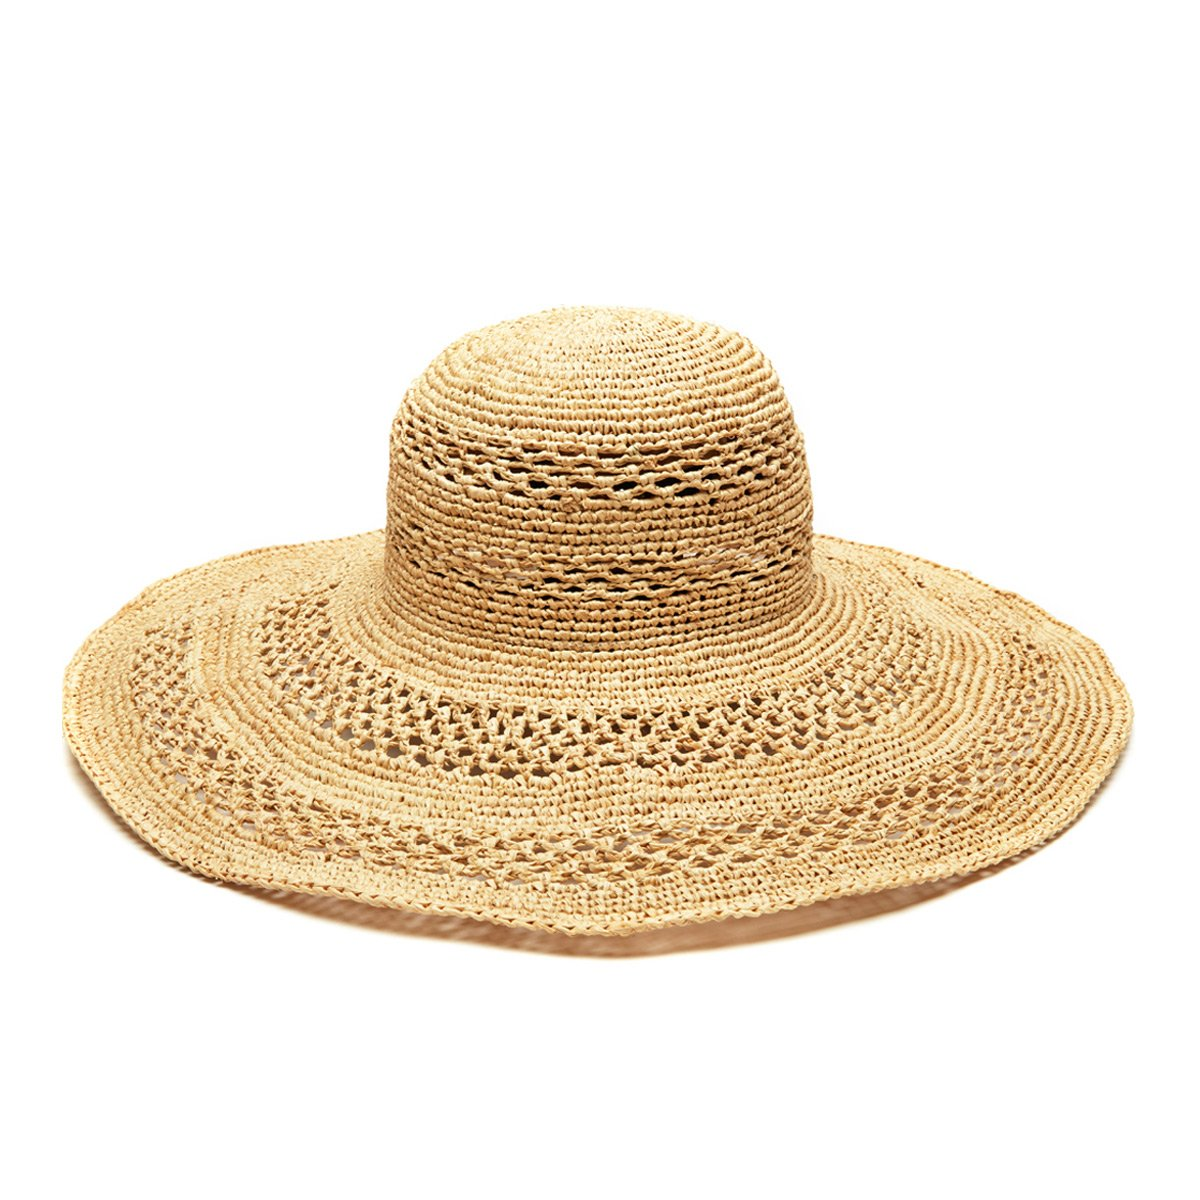 Mar Y Sol Sienna Sun Hat, Natural